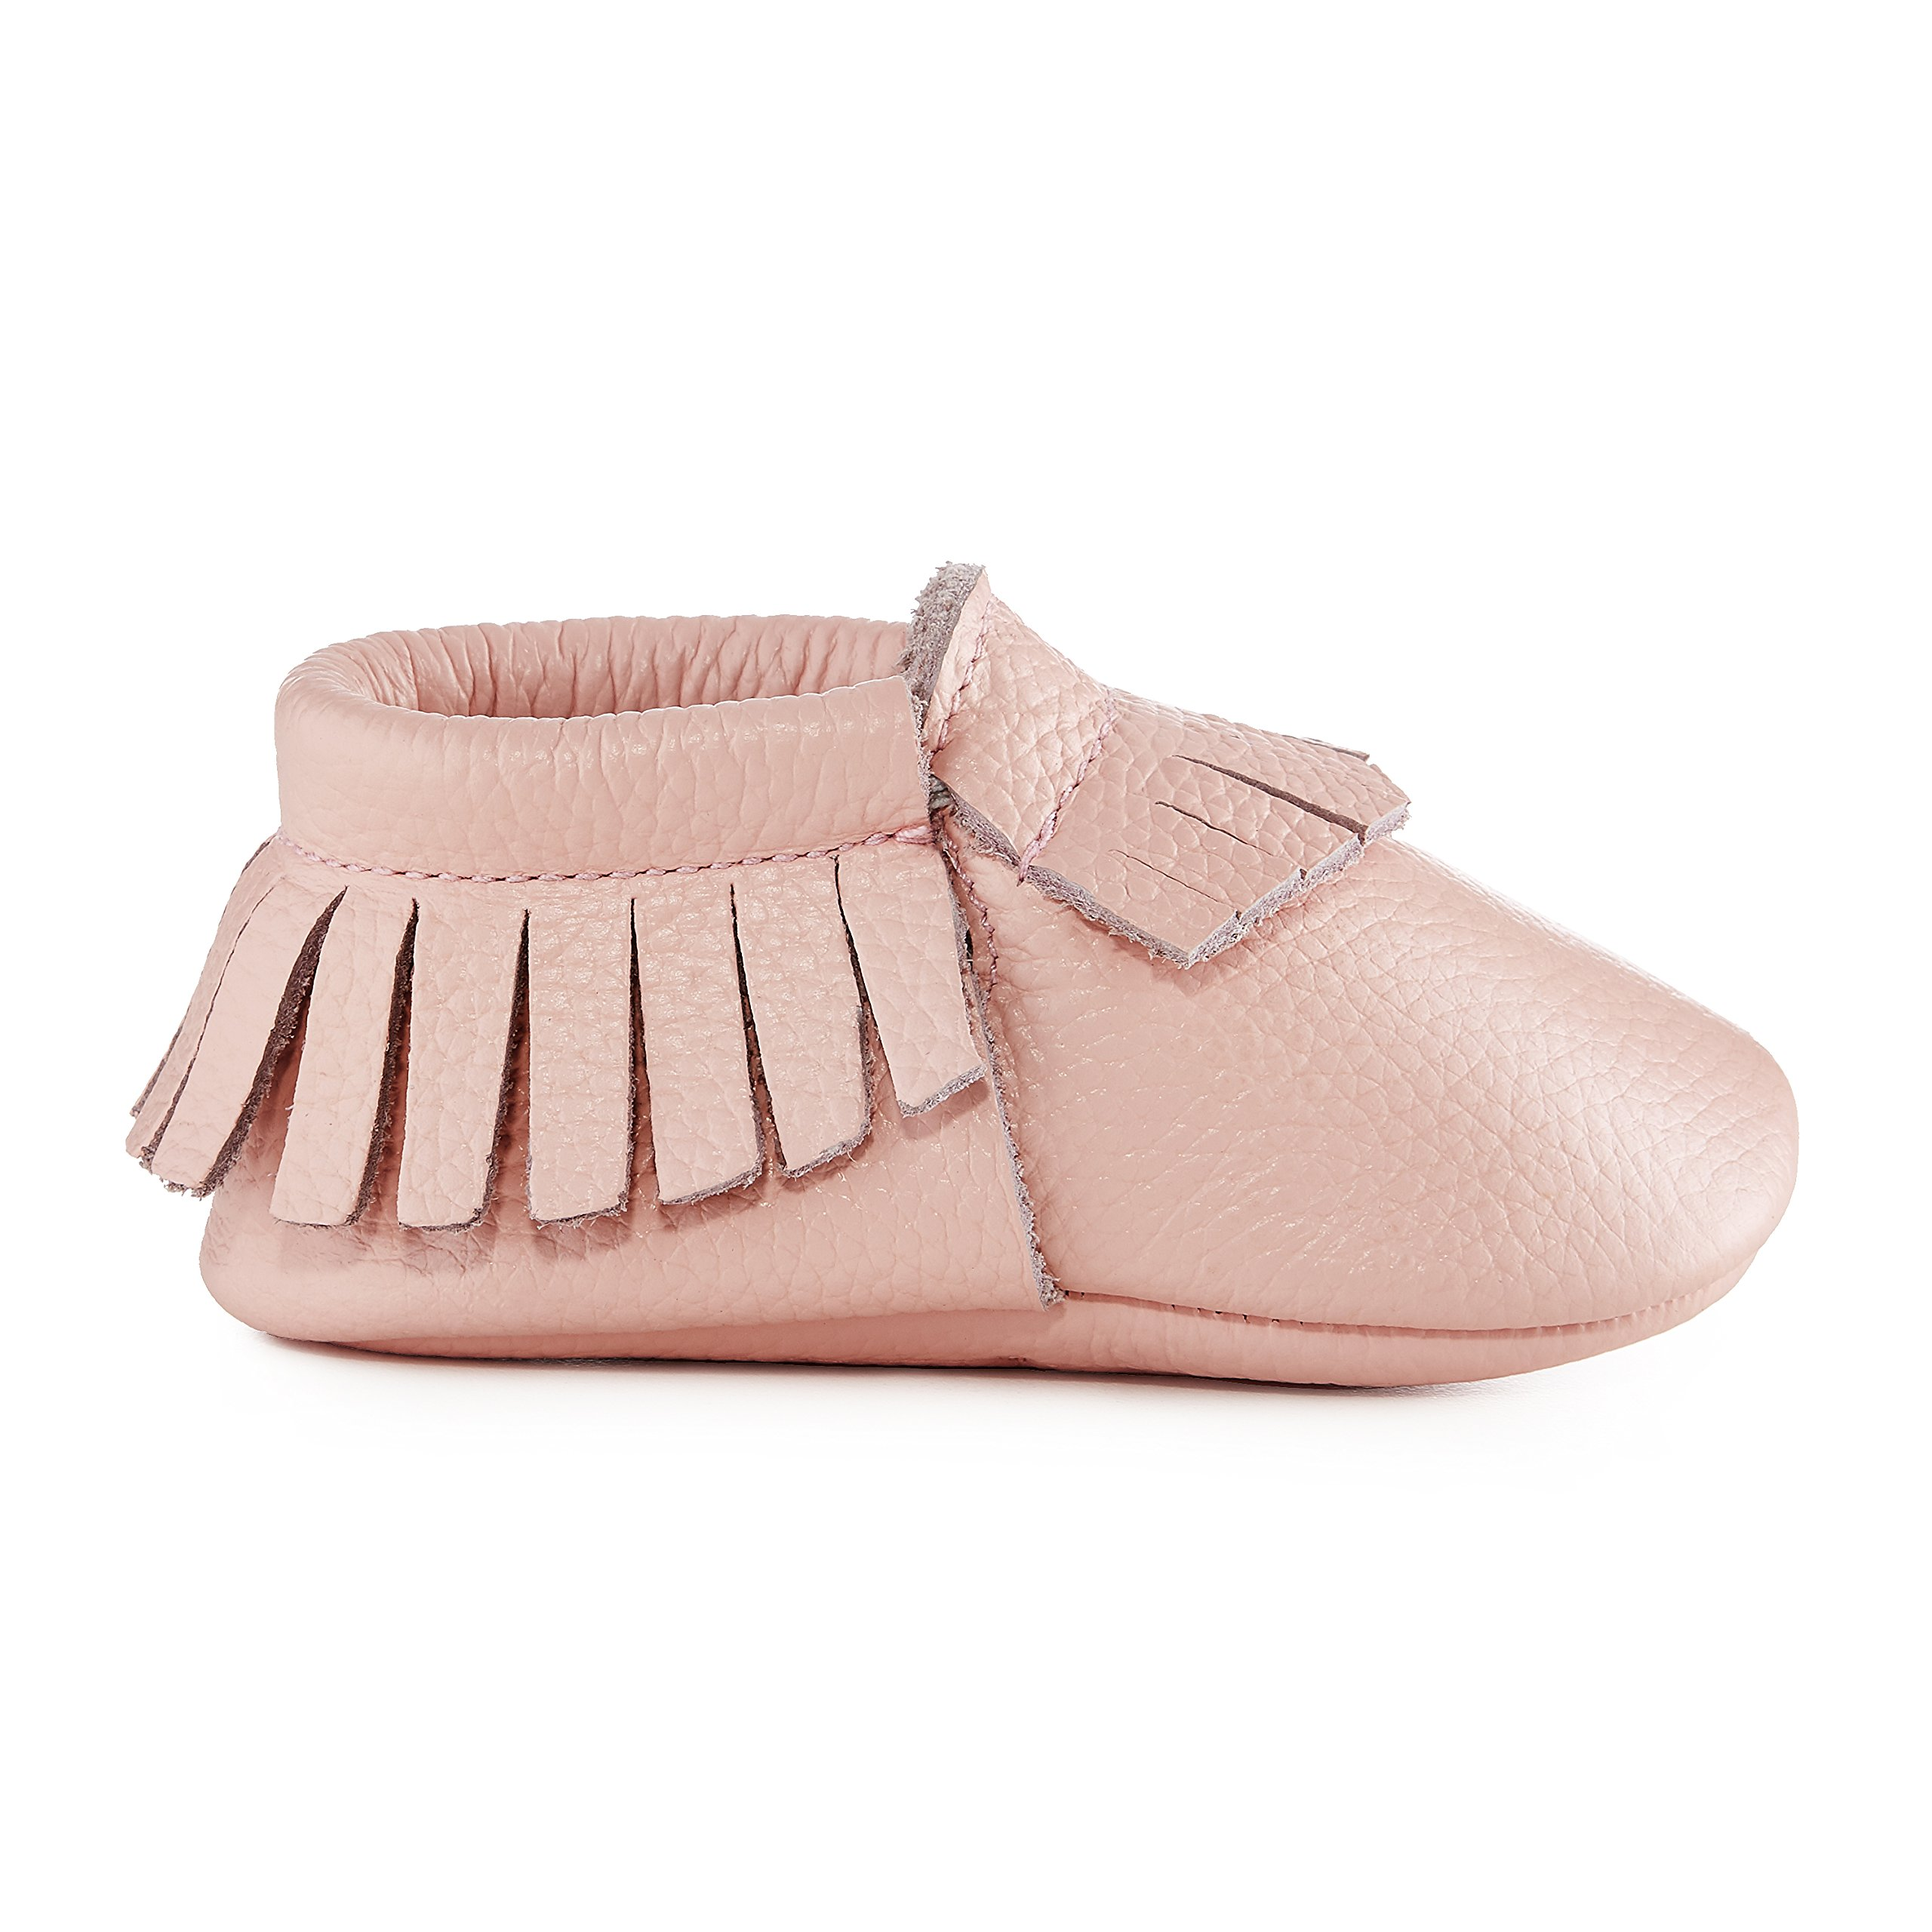 Babe Basics Baby Moccasins Soft-Soled Genuine Leather Moccasins for Babies and Toddlers (Medium, Light Pink)